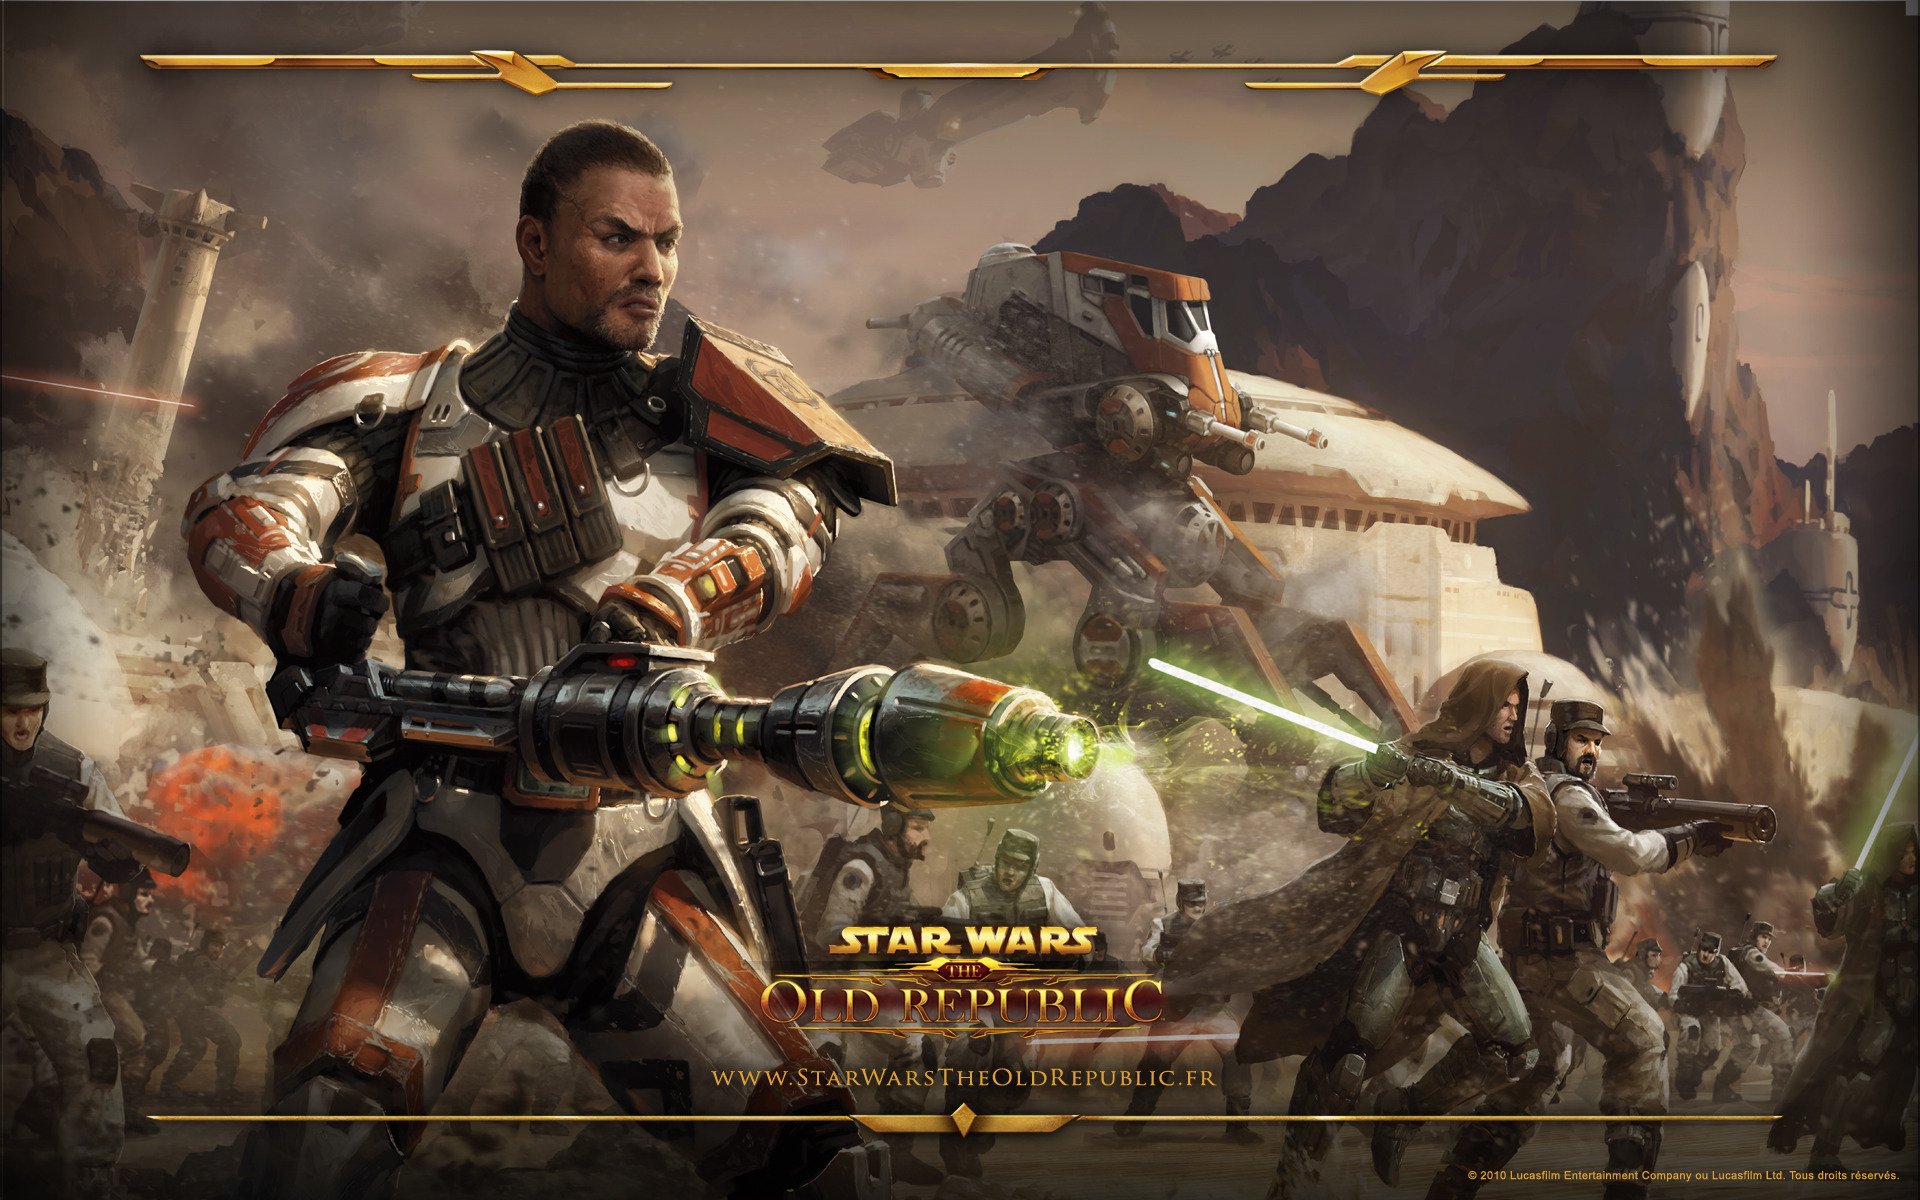 Free Download Star Wars Images Star Wars The Old Republic